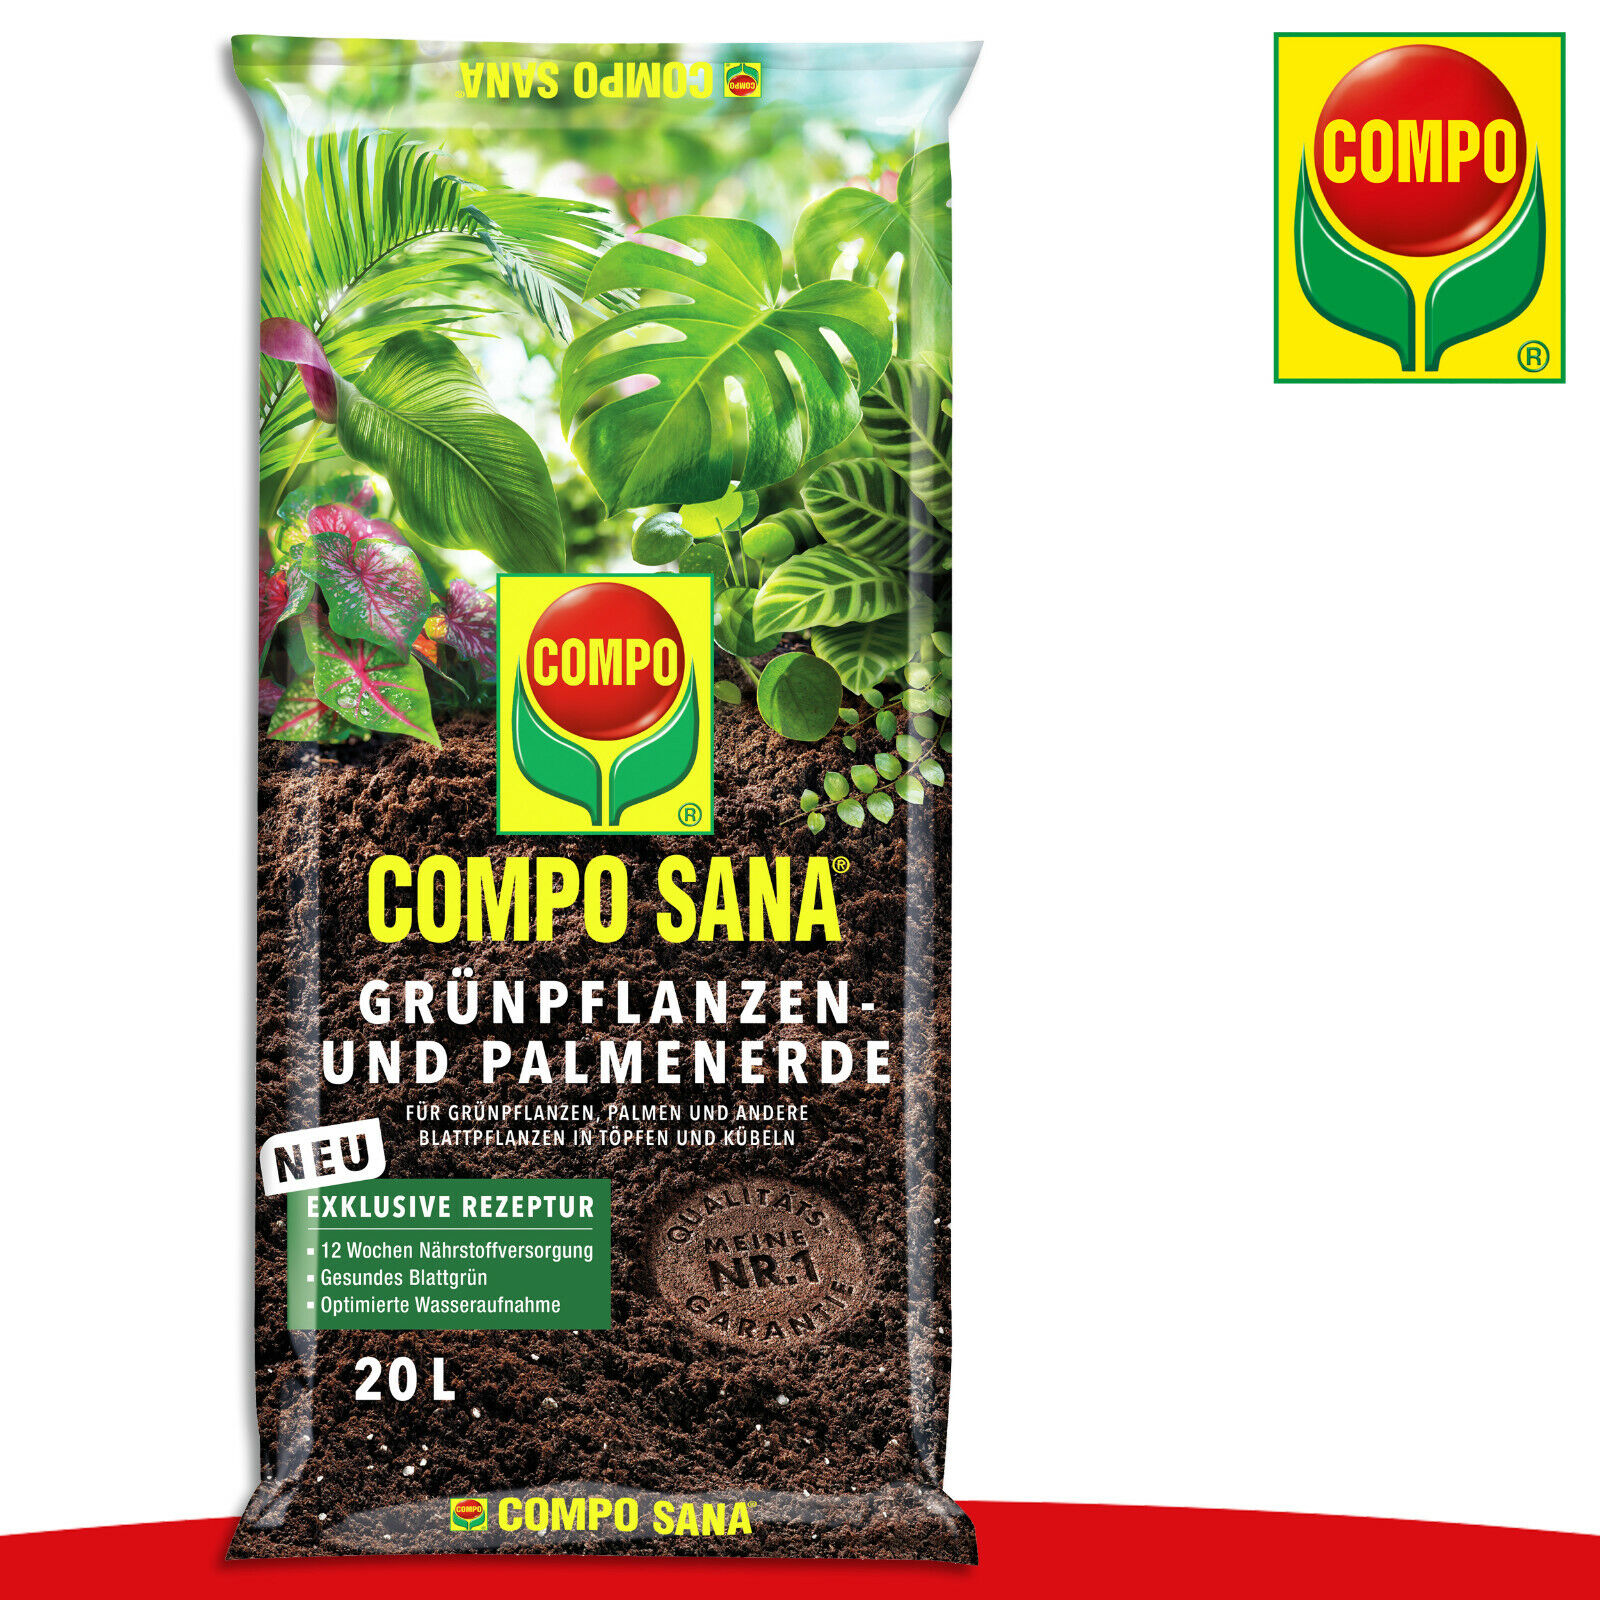 COMPO Sana 20L Green Plants And Palmenerde Nutrients Pot Growth Care Flower Bed